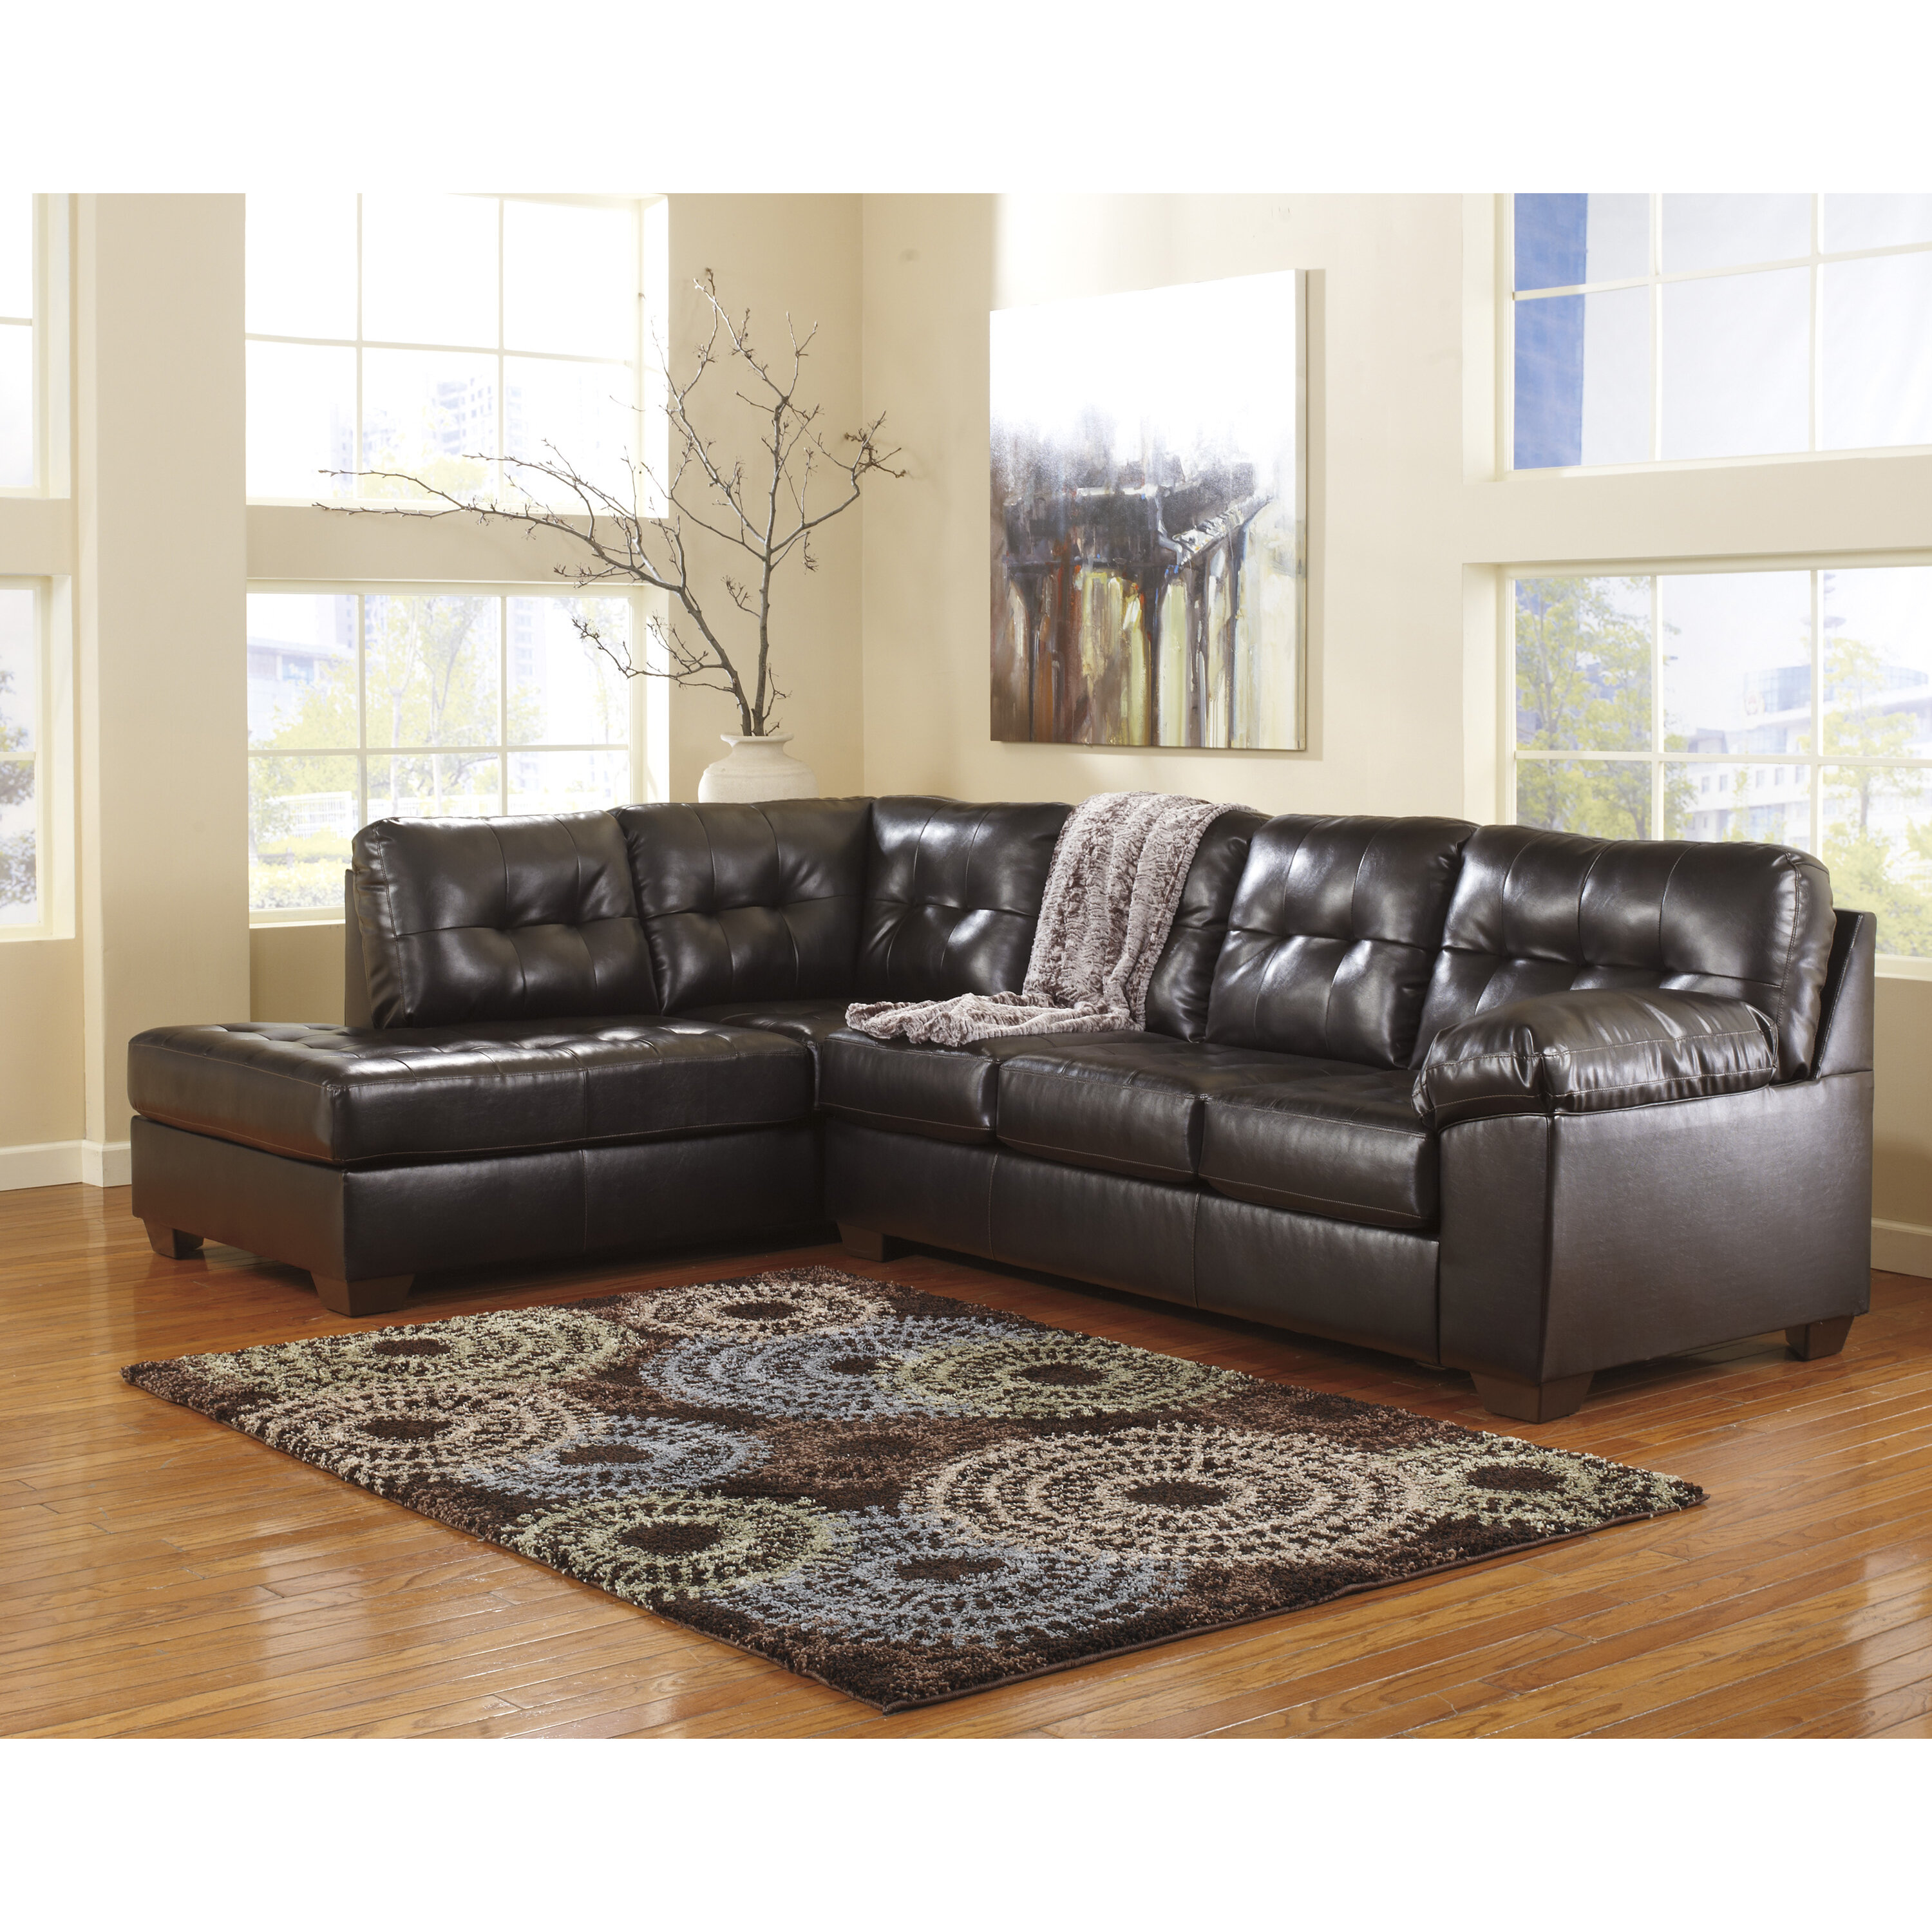 Red Barrel Studio Bellville Sectional U0026 Reviews | Wayfair